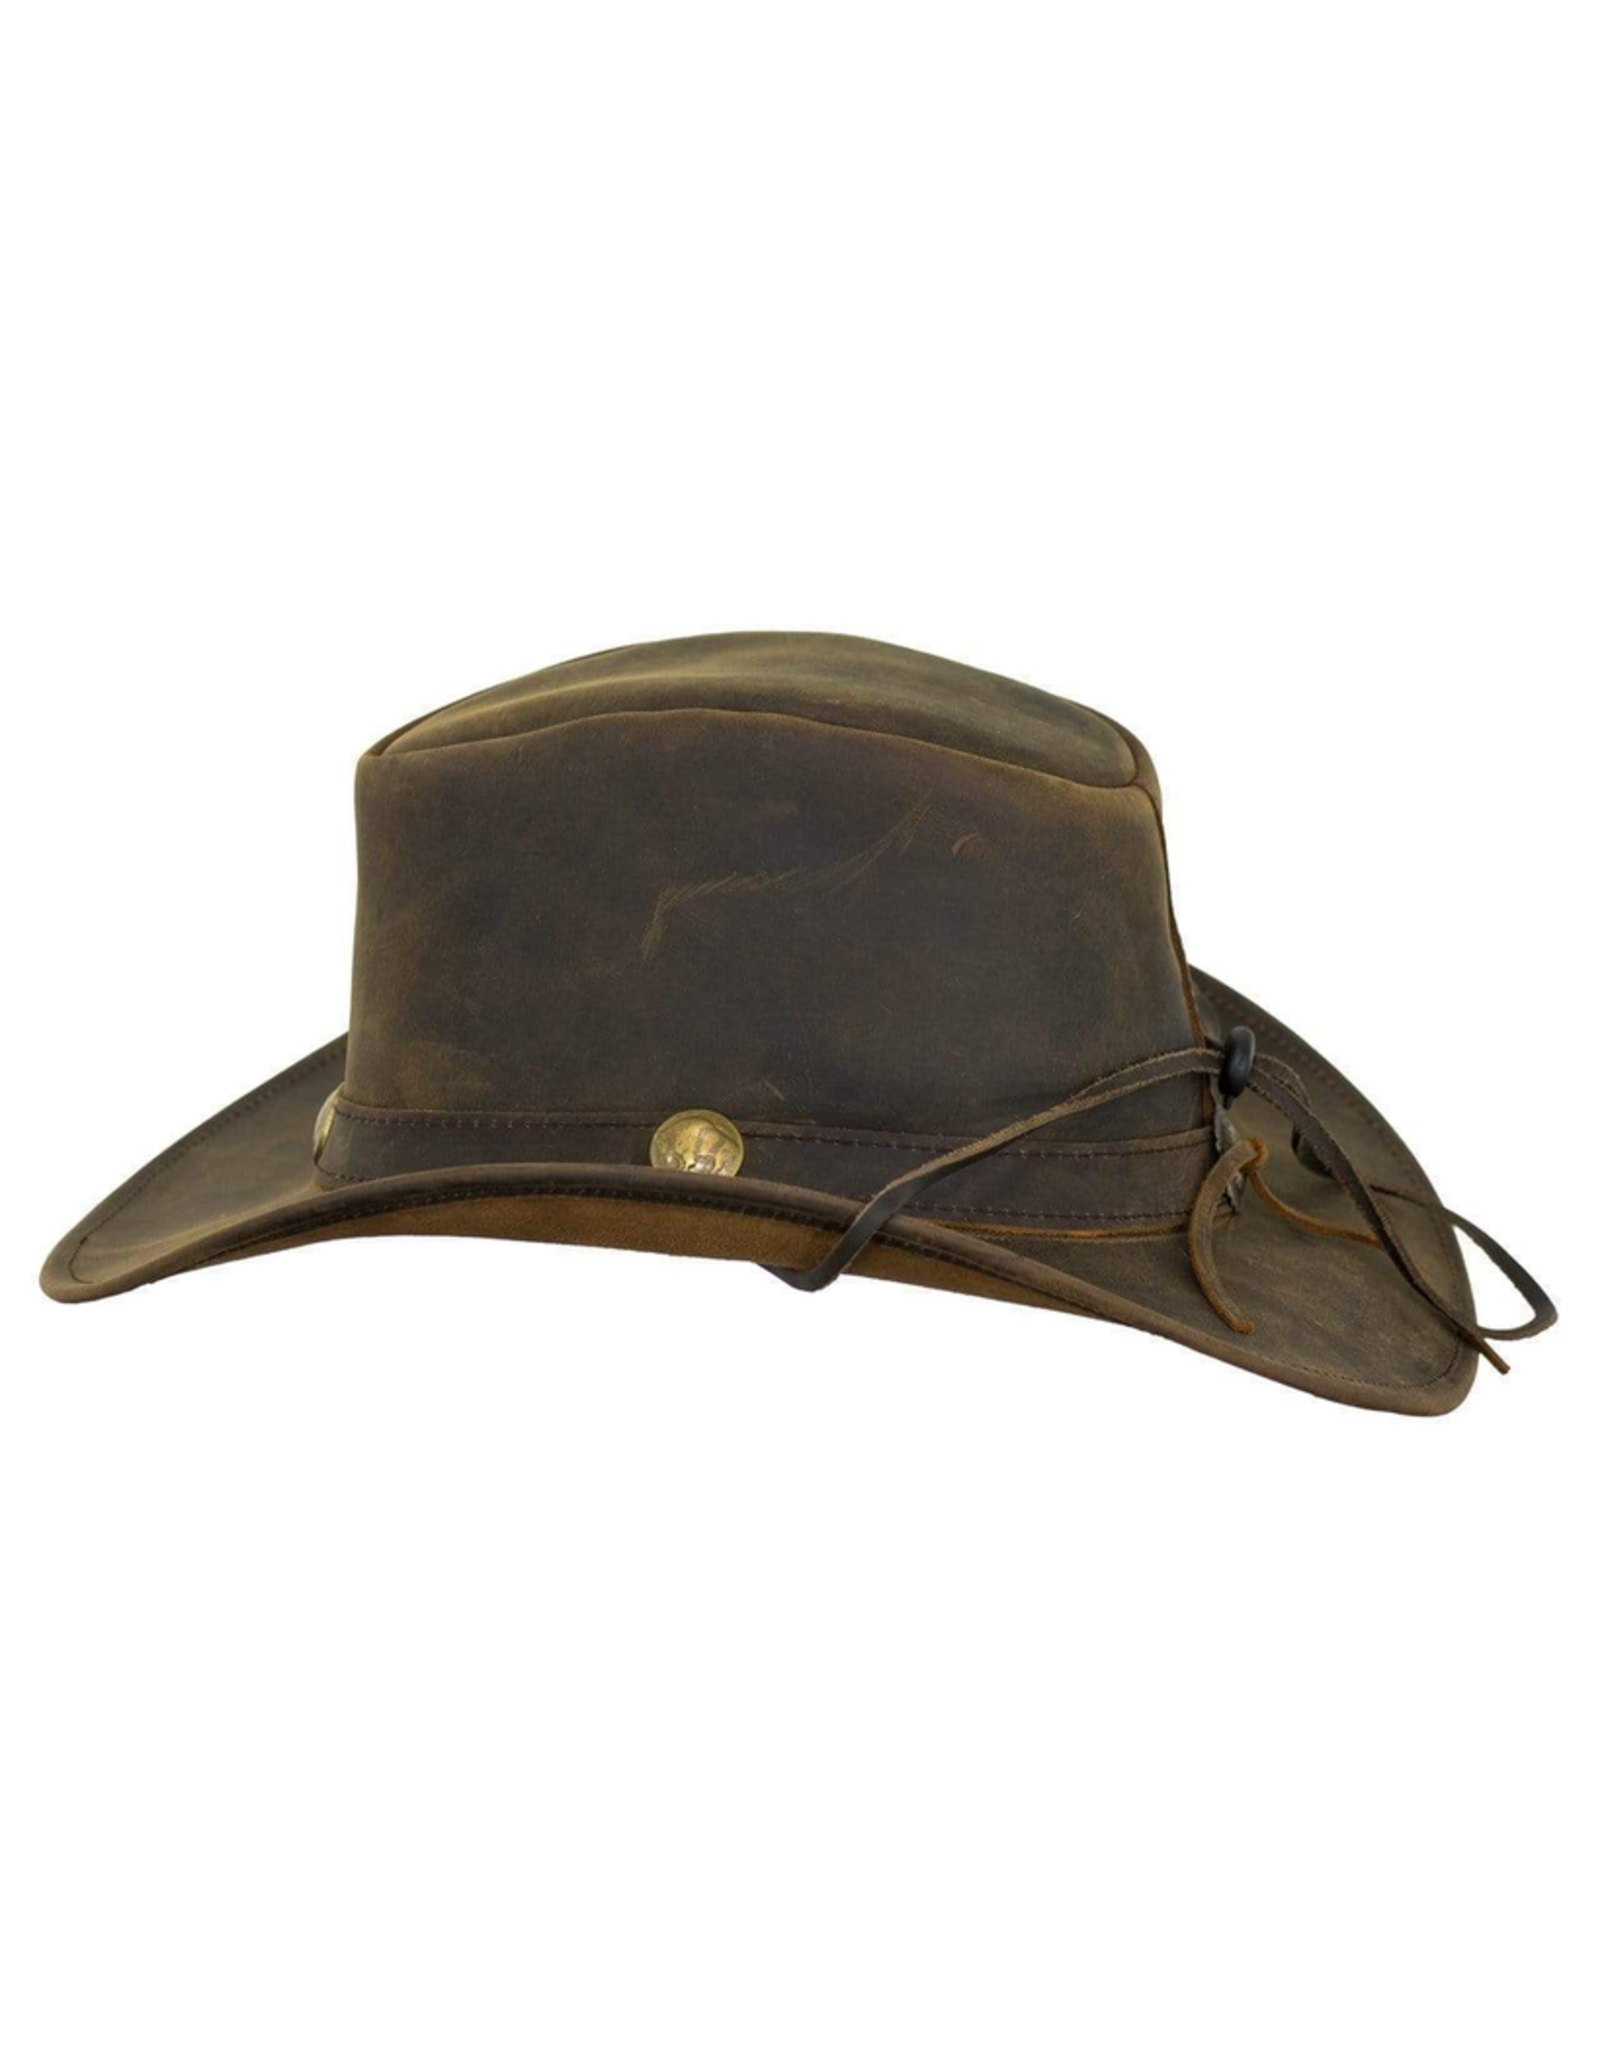 Hats OUTBACK Cheyenne No.13006